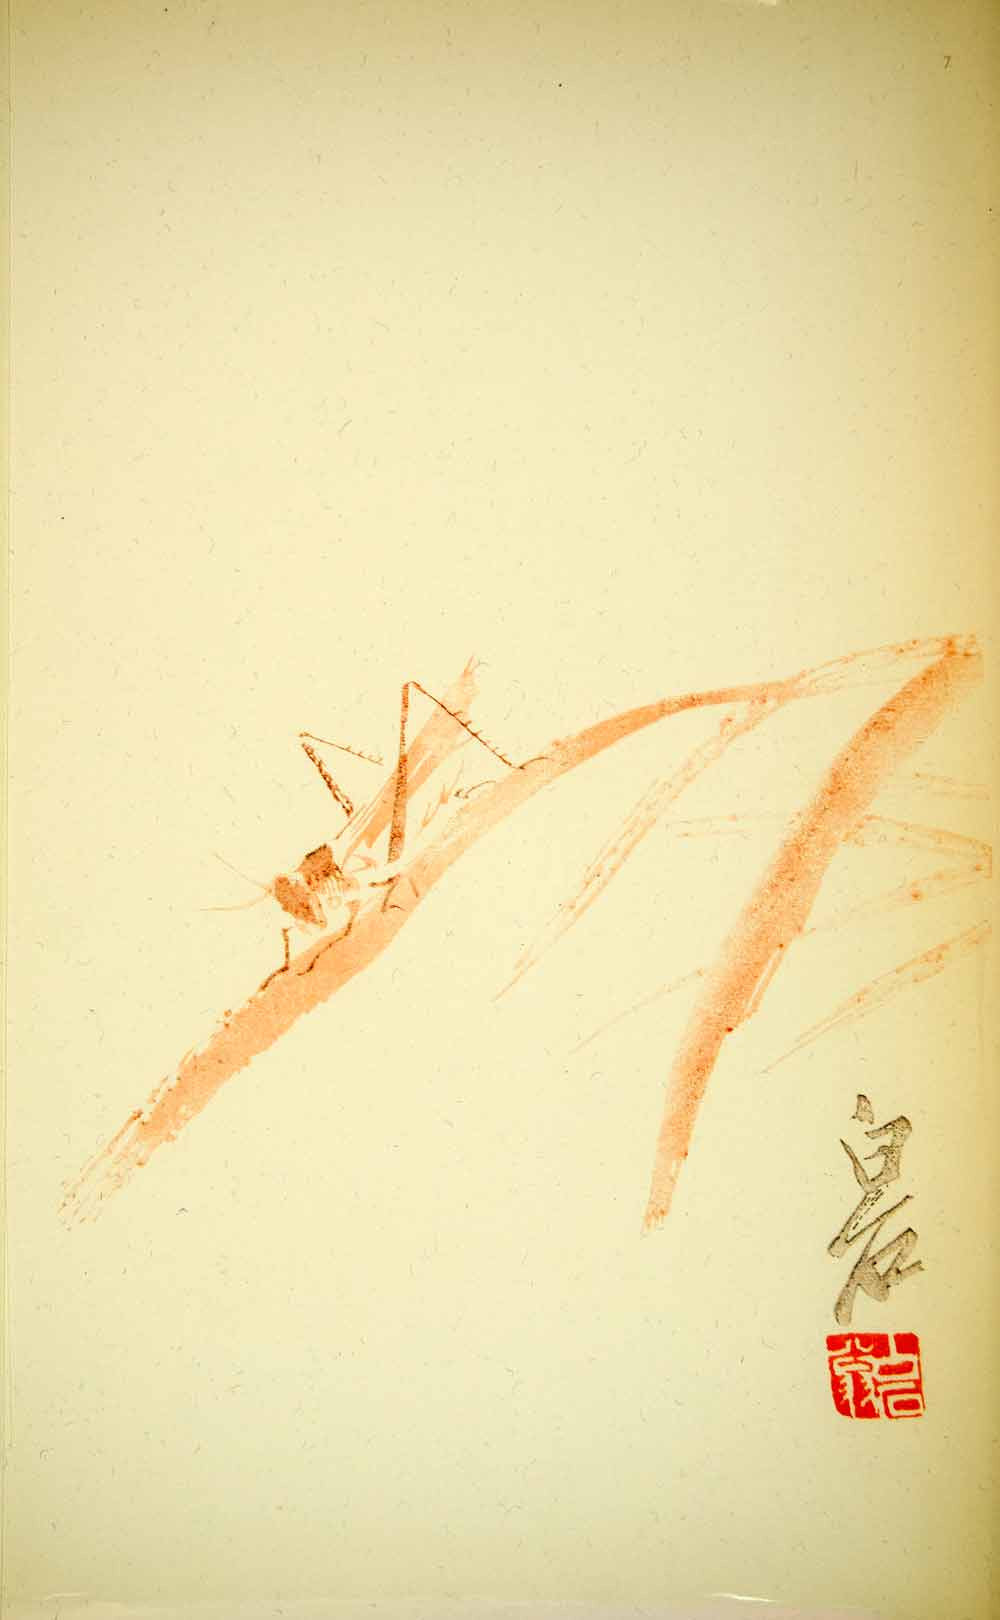 1953 Lithograph Grasshopper Reeds Chi Pai-Shih Chinese Art Bug Insect Orange - Period Paper